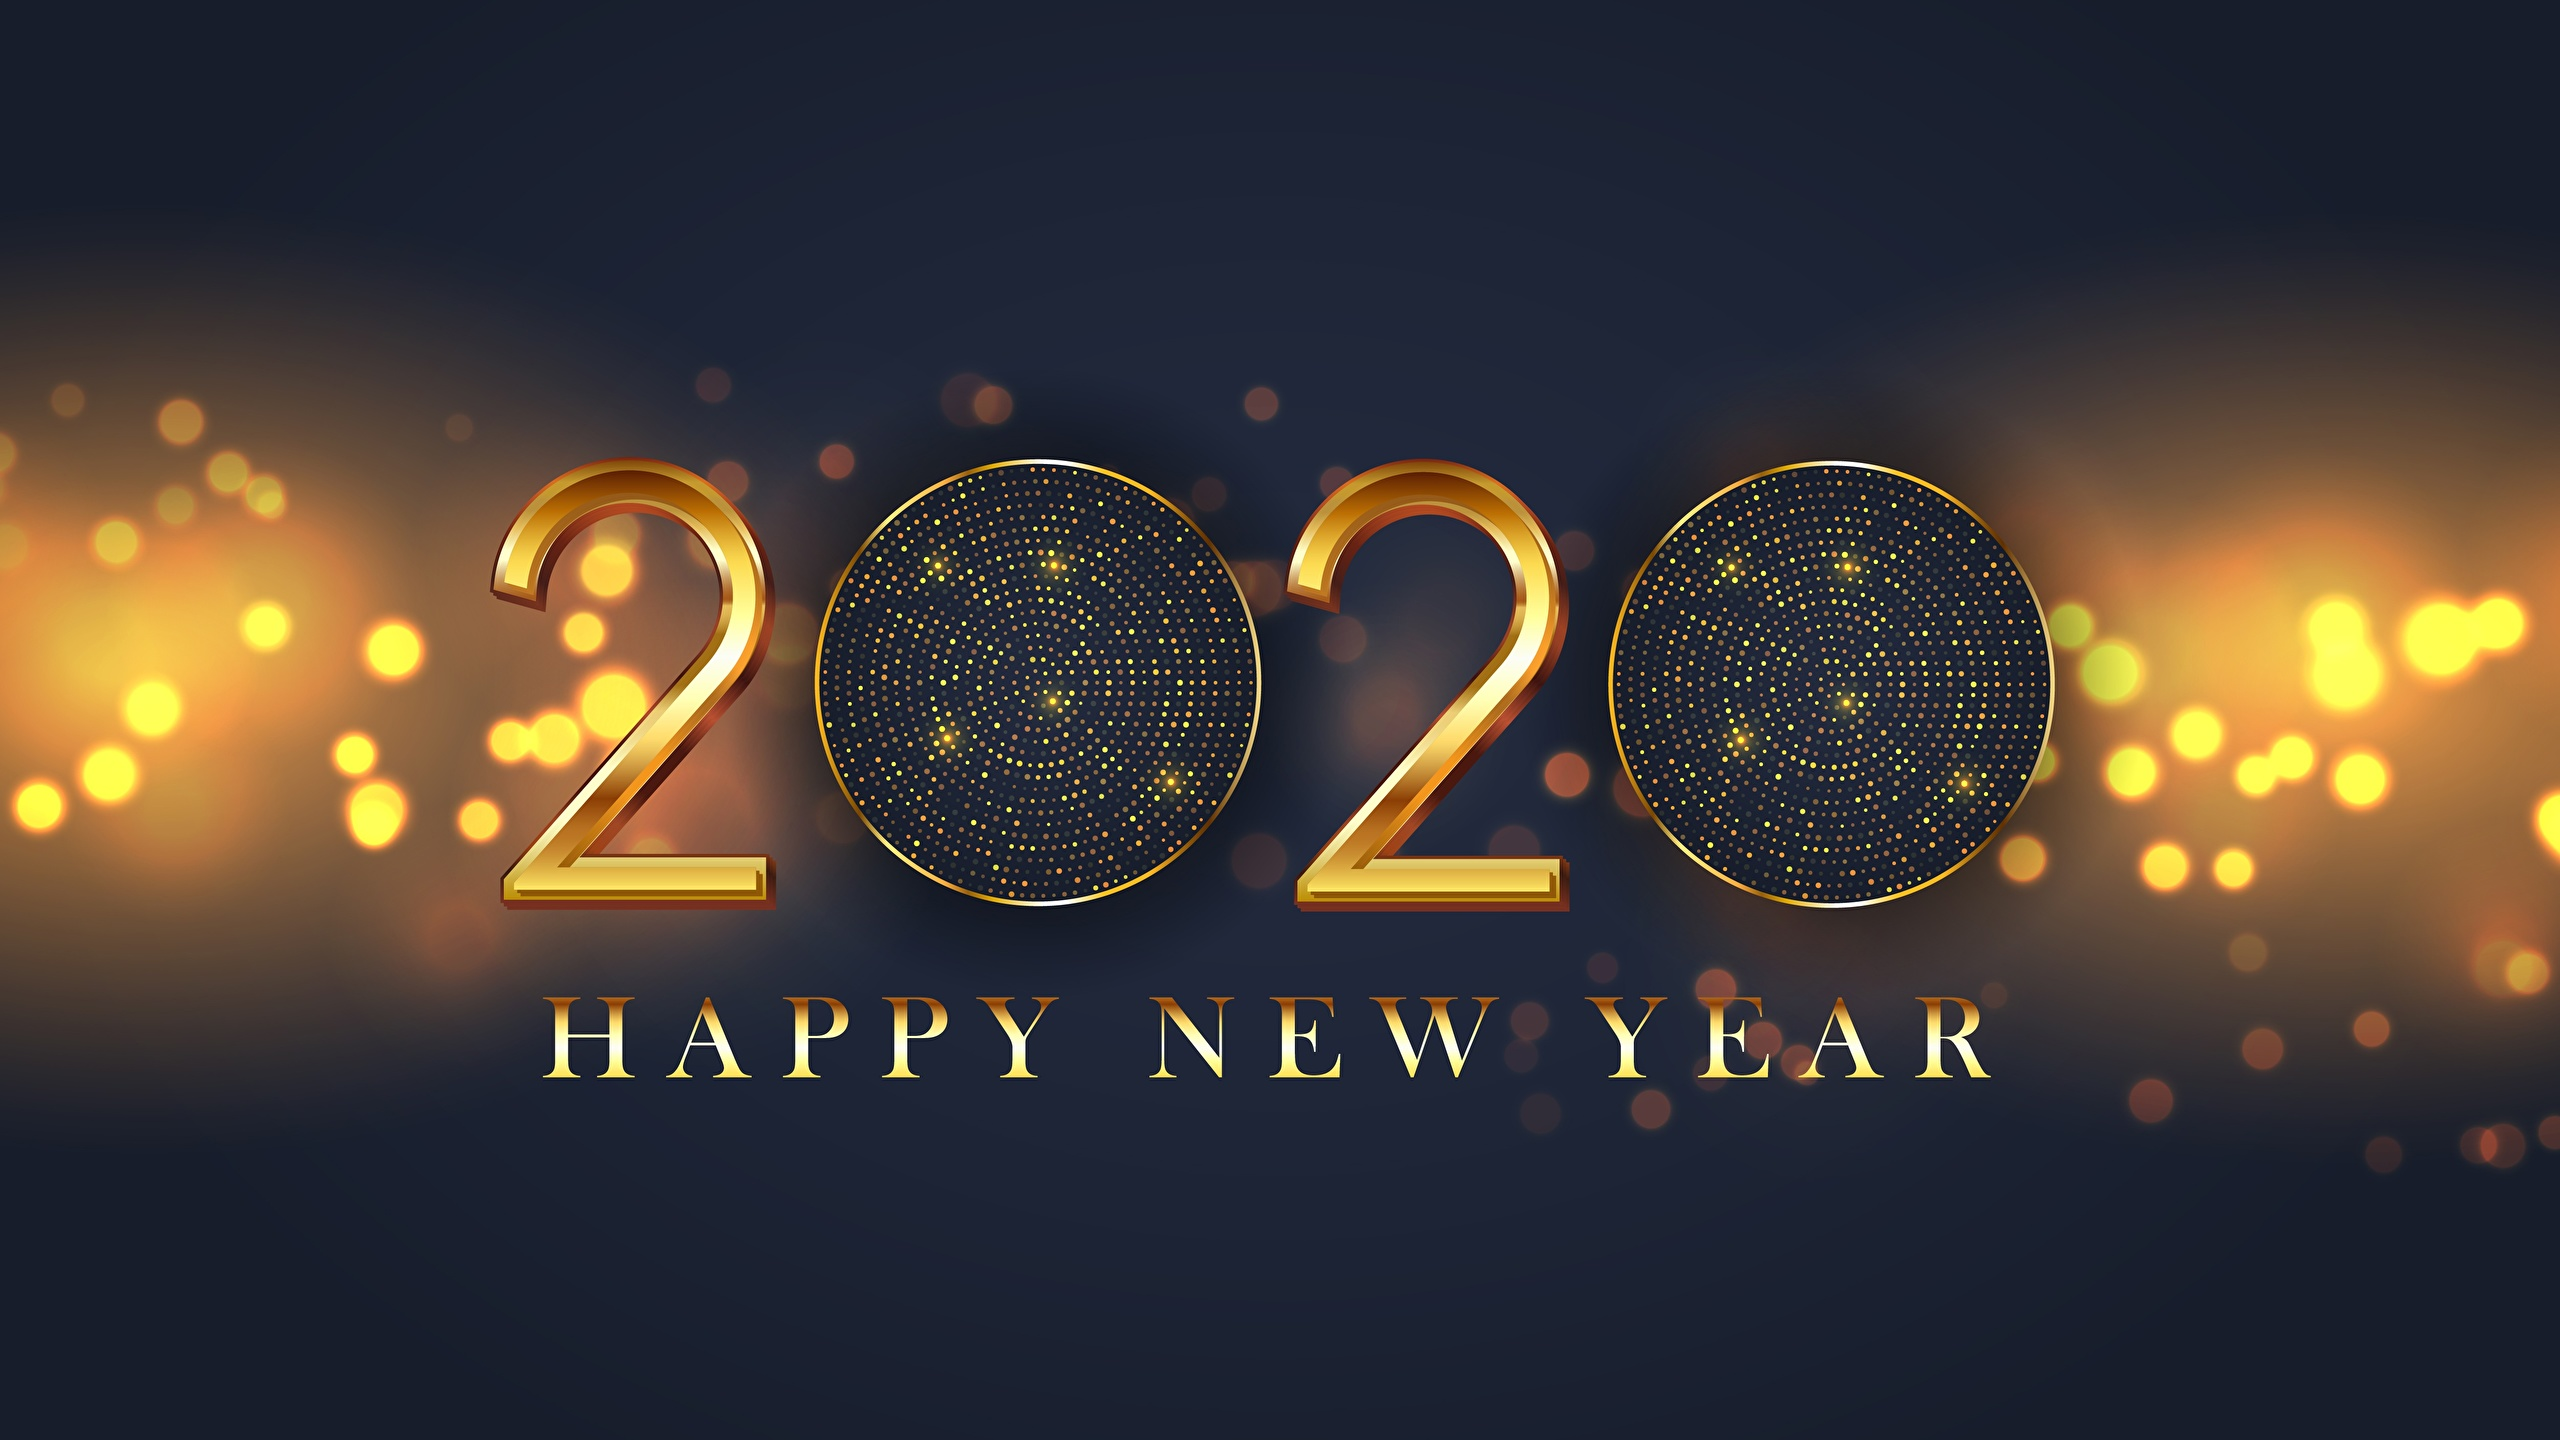 Image 2020 New Year English Word Lettering 2560x1440